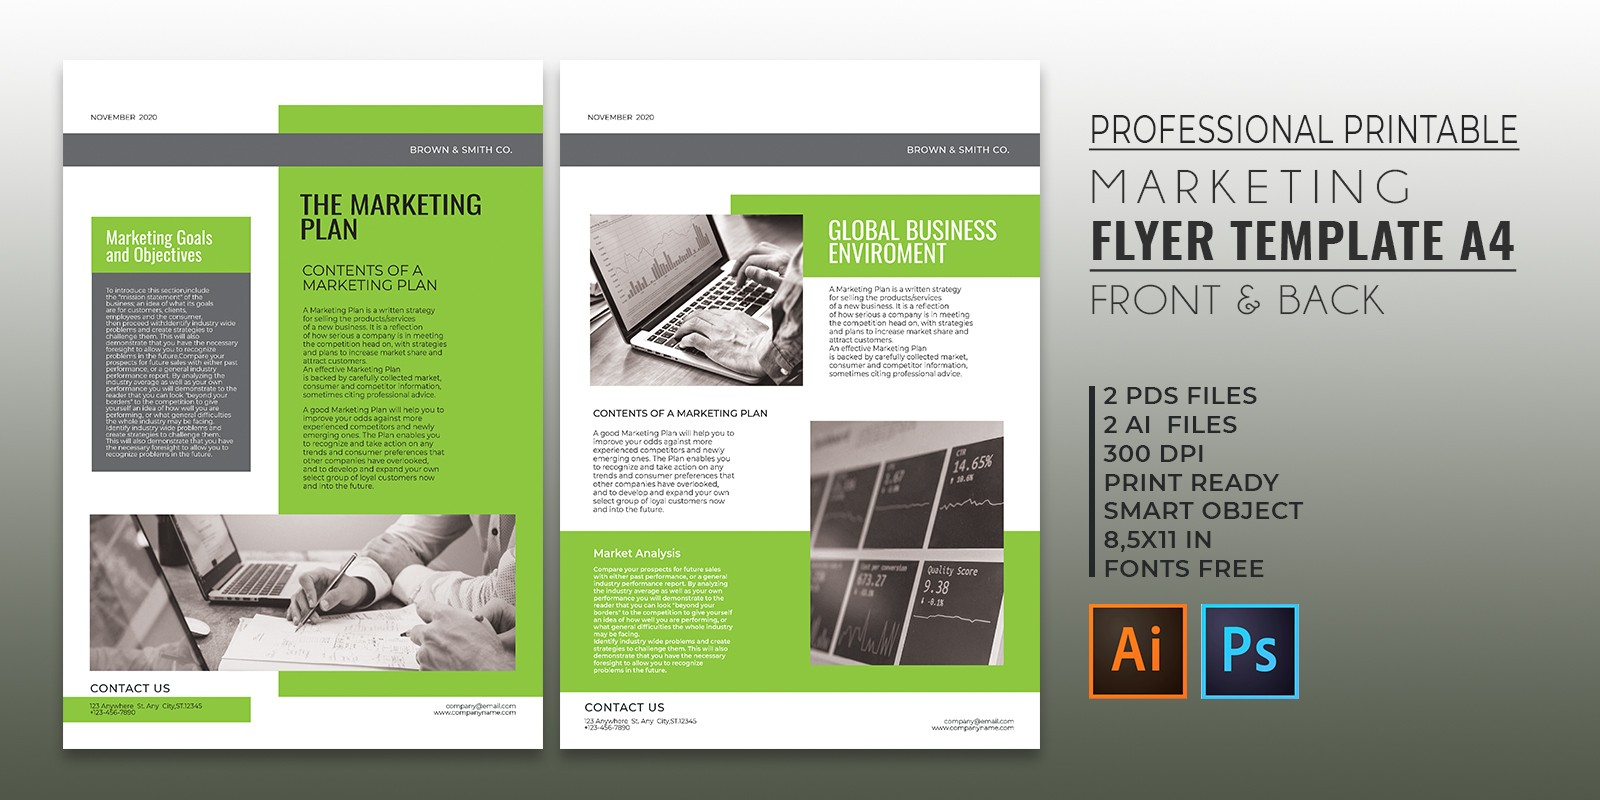 Professional Marketing Flyer Template